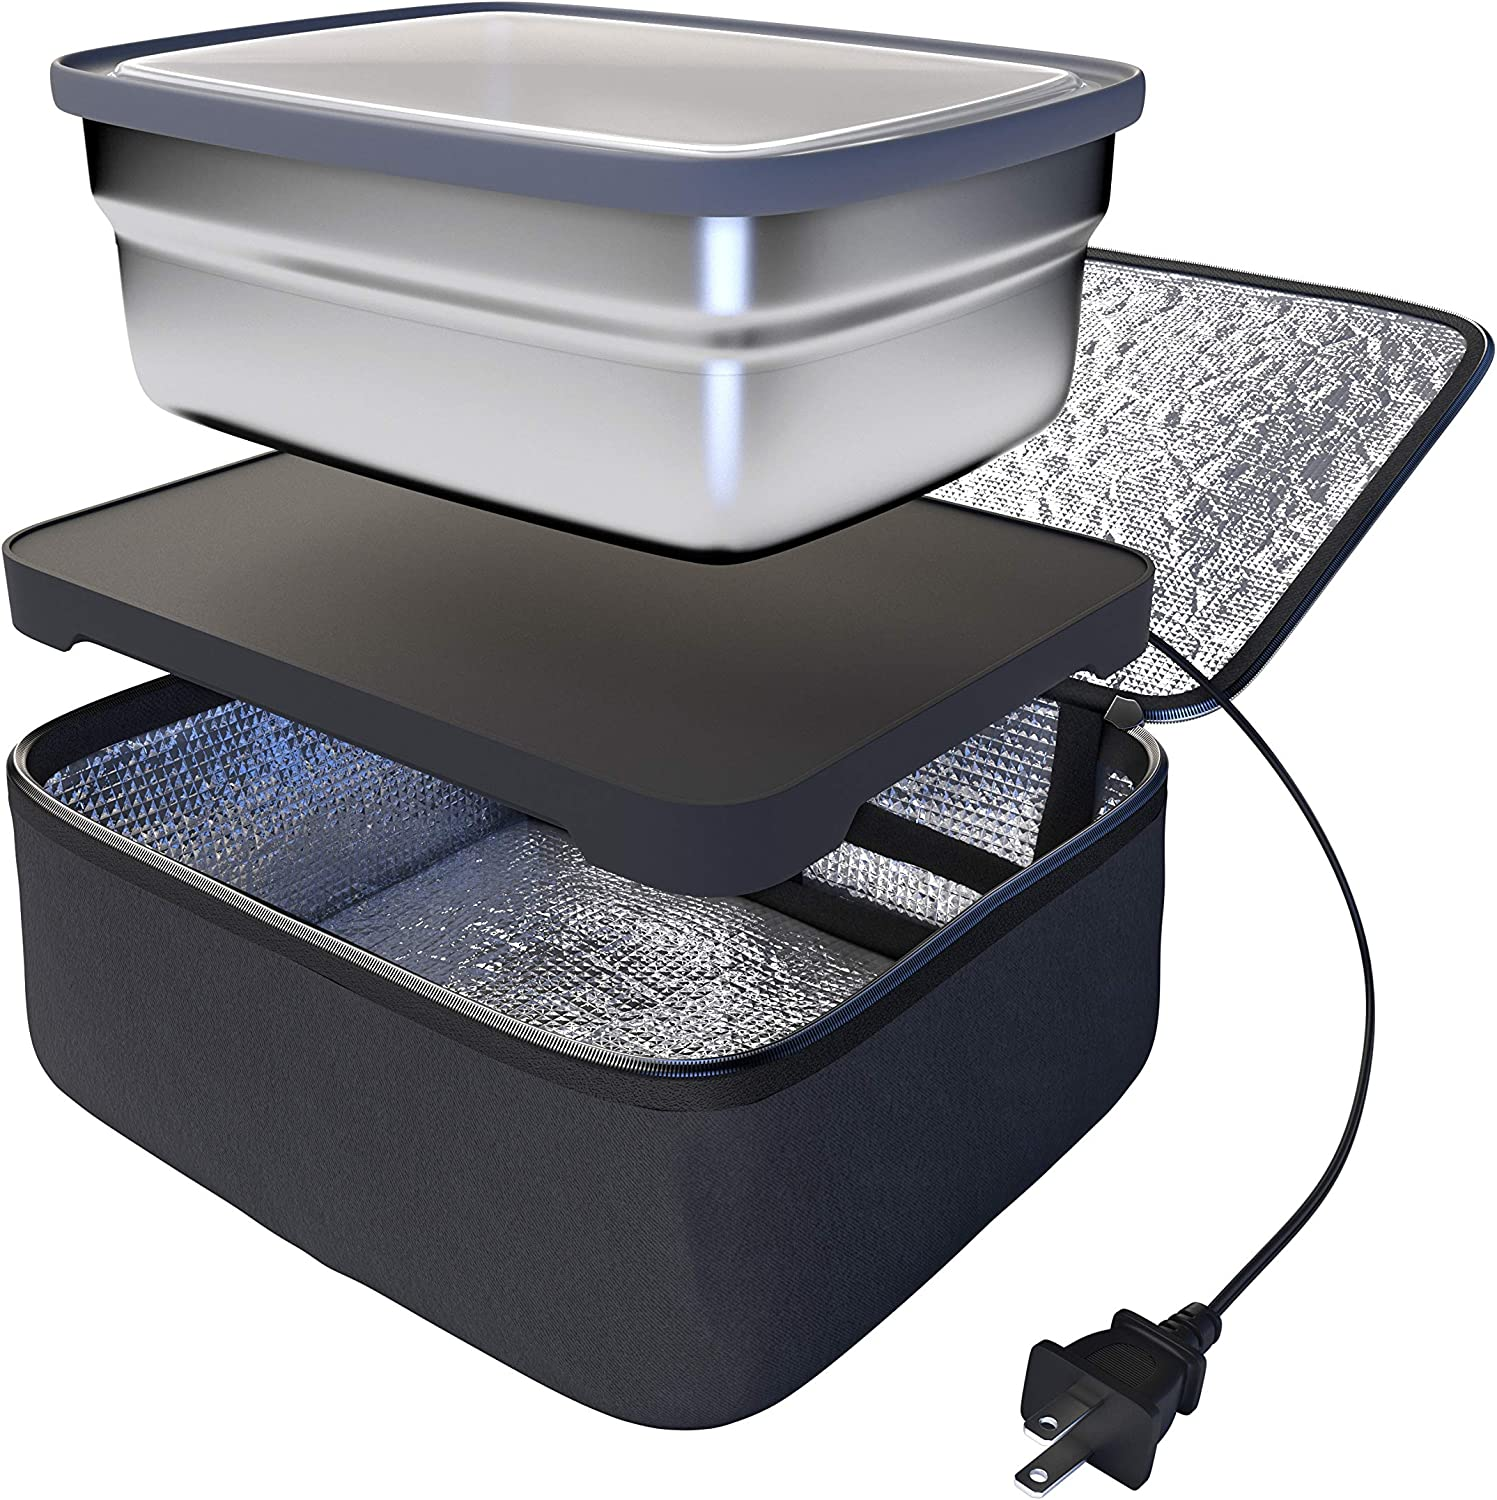 Skywin Road Portable Oven and Lunch Warmer - Personal Food Warmer for reheating meals in Car & Truck without an office microwave